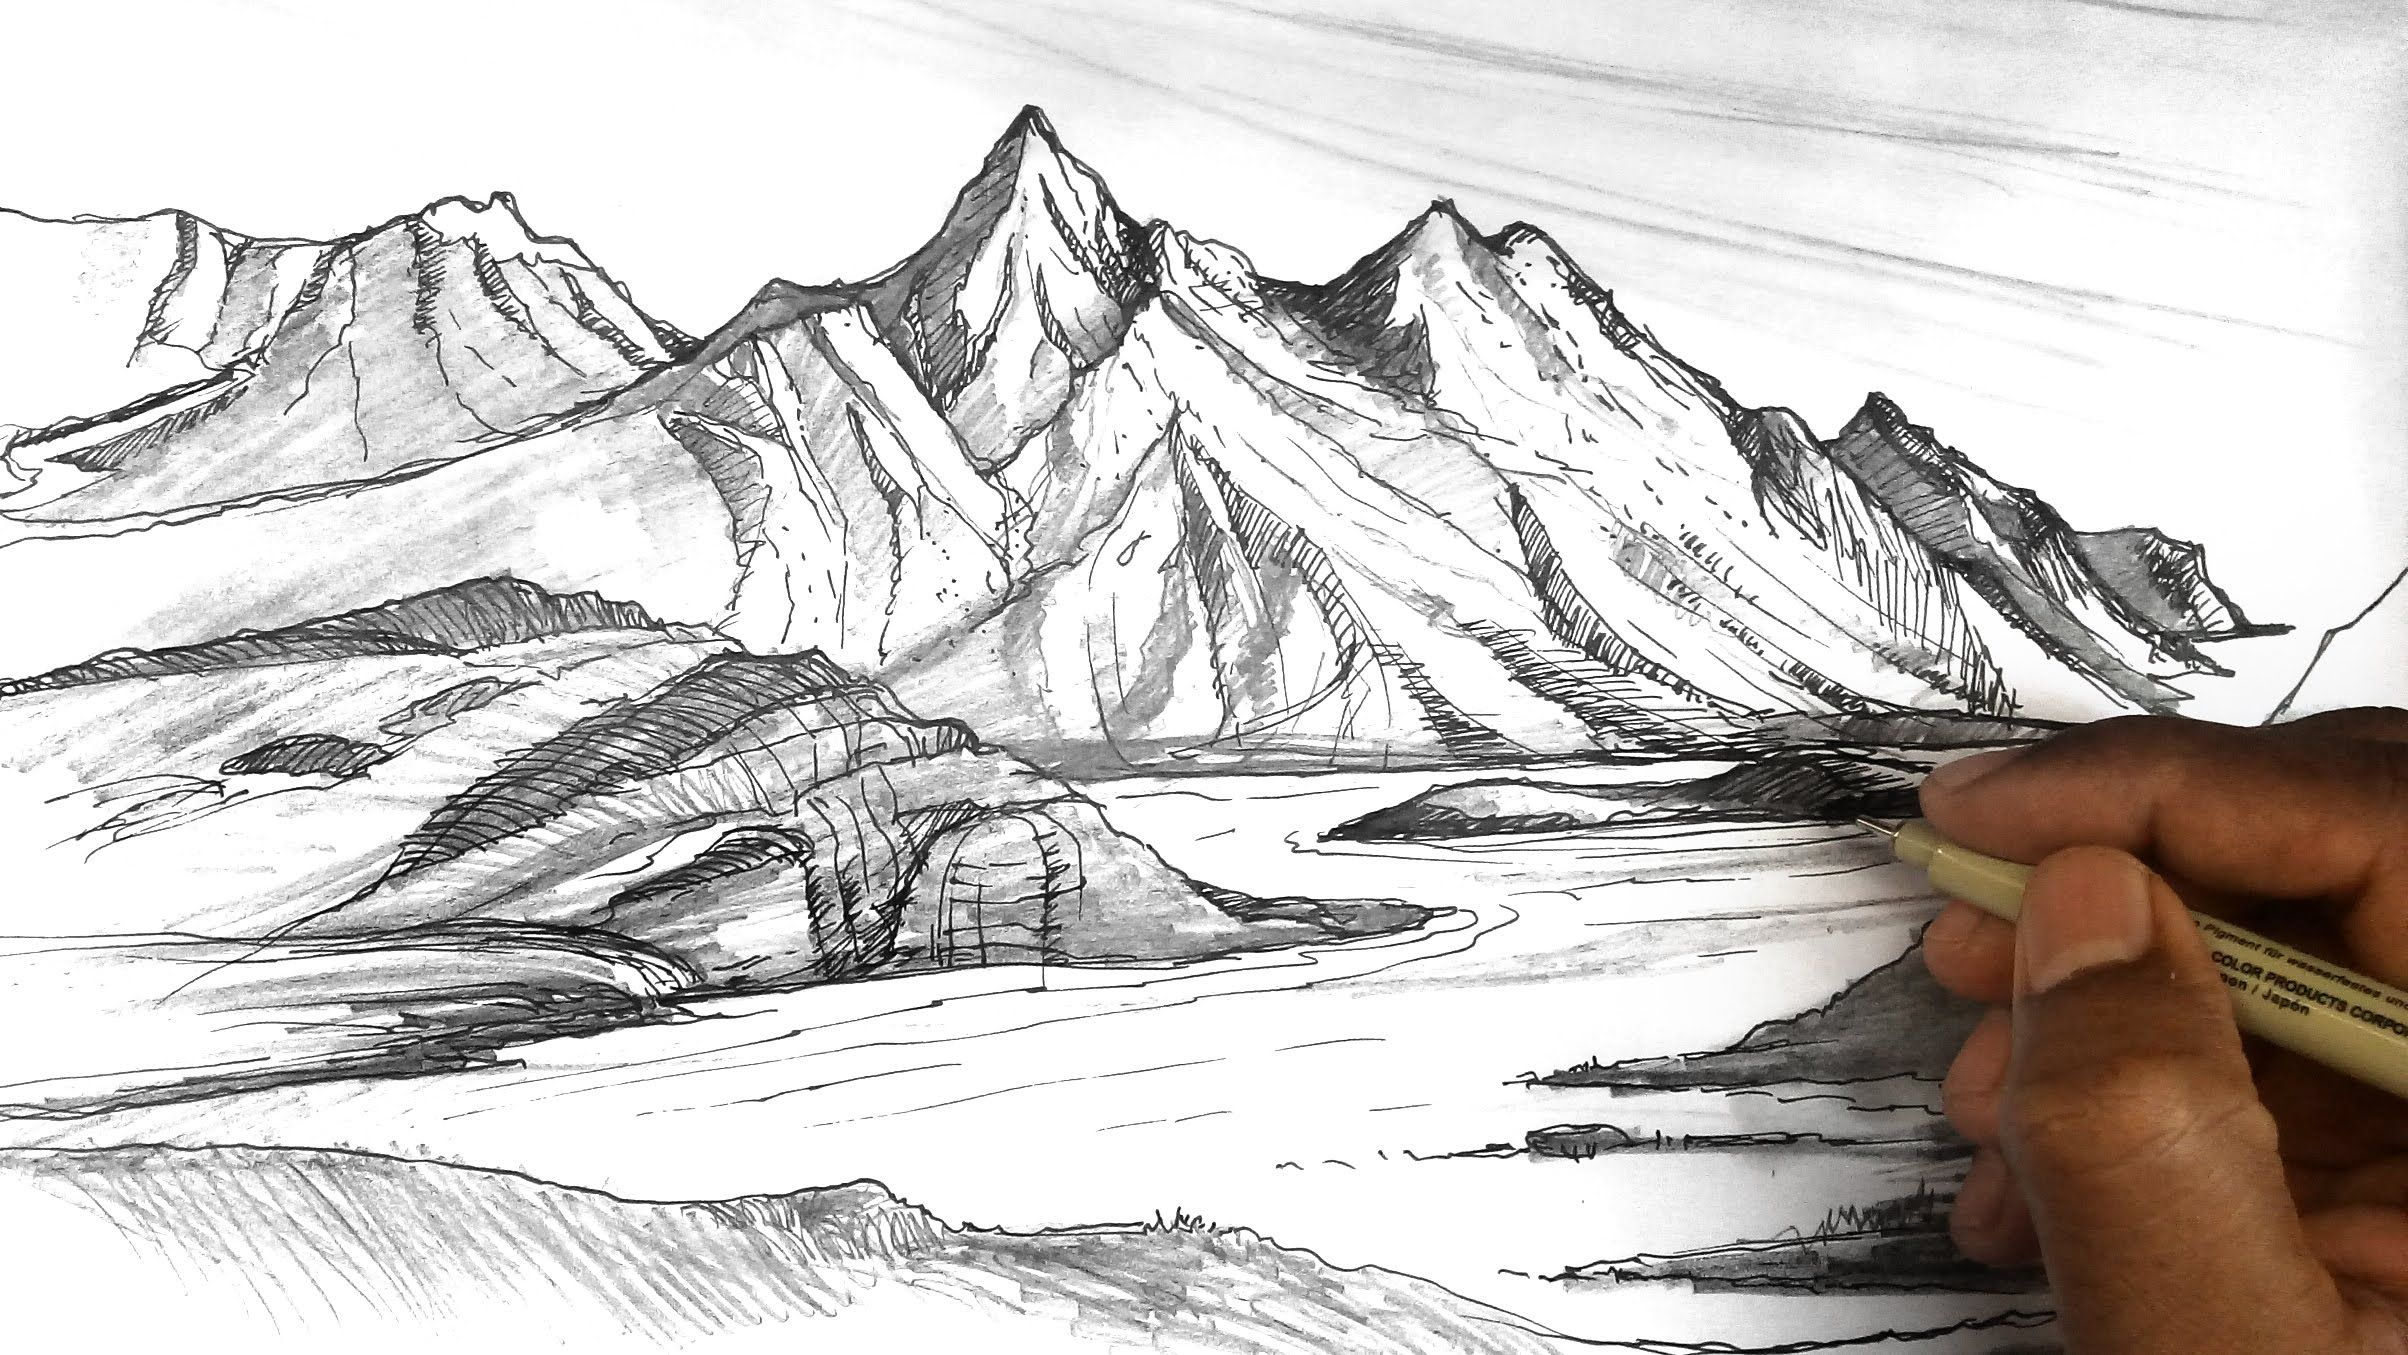 Pin By Kathe Welch On Drawings Mountain Drawing Mountain Sketch Landscape Drawings